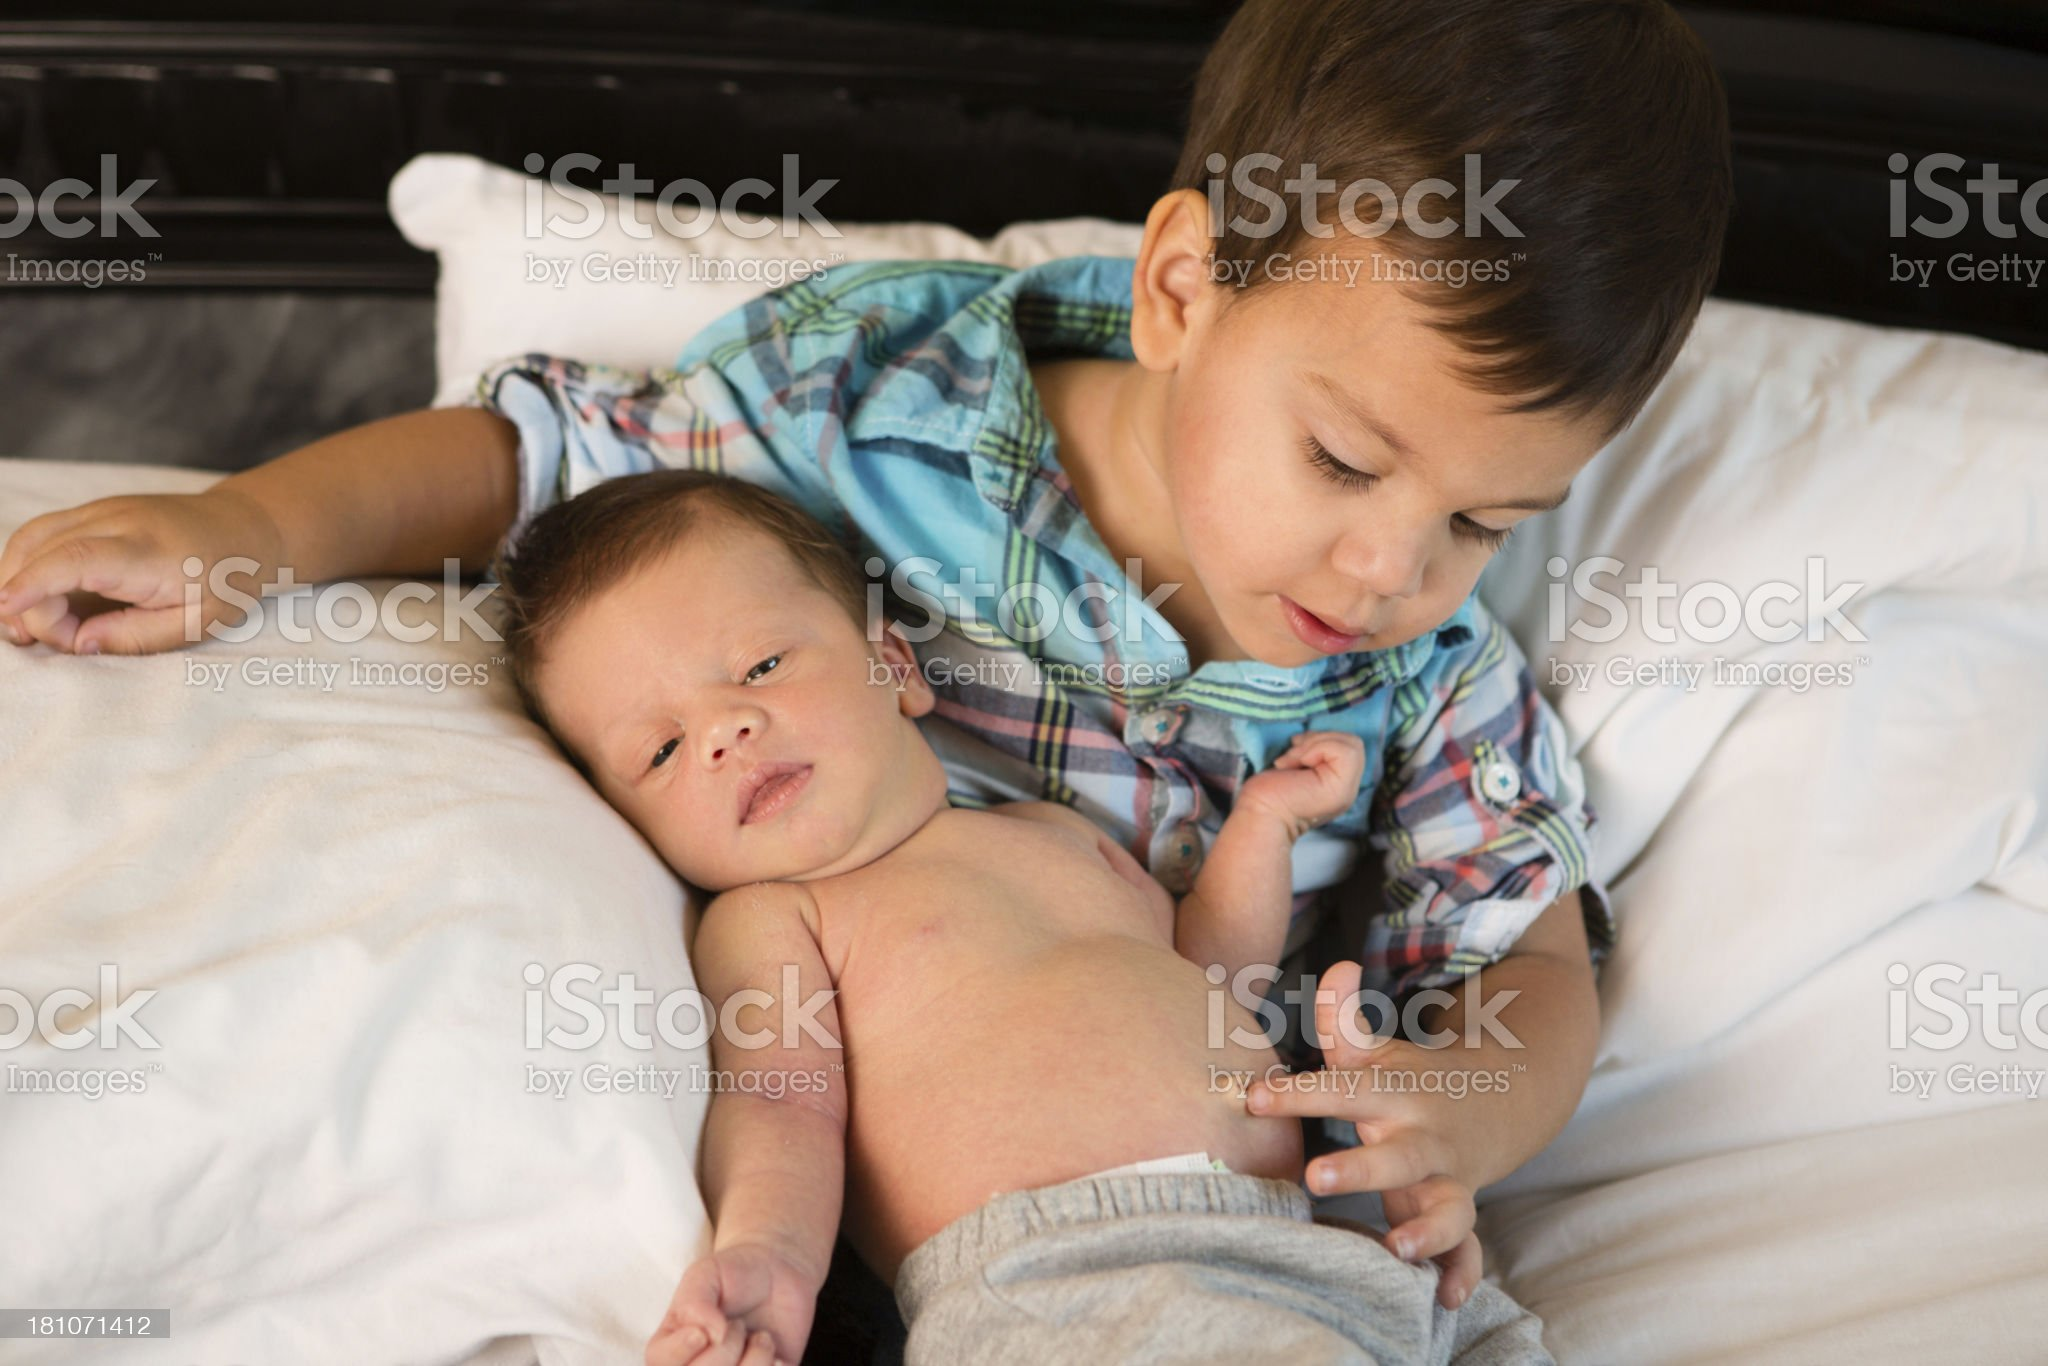 Toddler Boy Touching His Baby Brother's Belly Button royalty-free stock photo